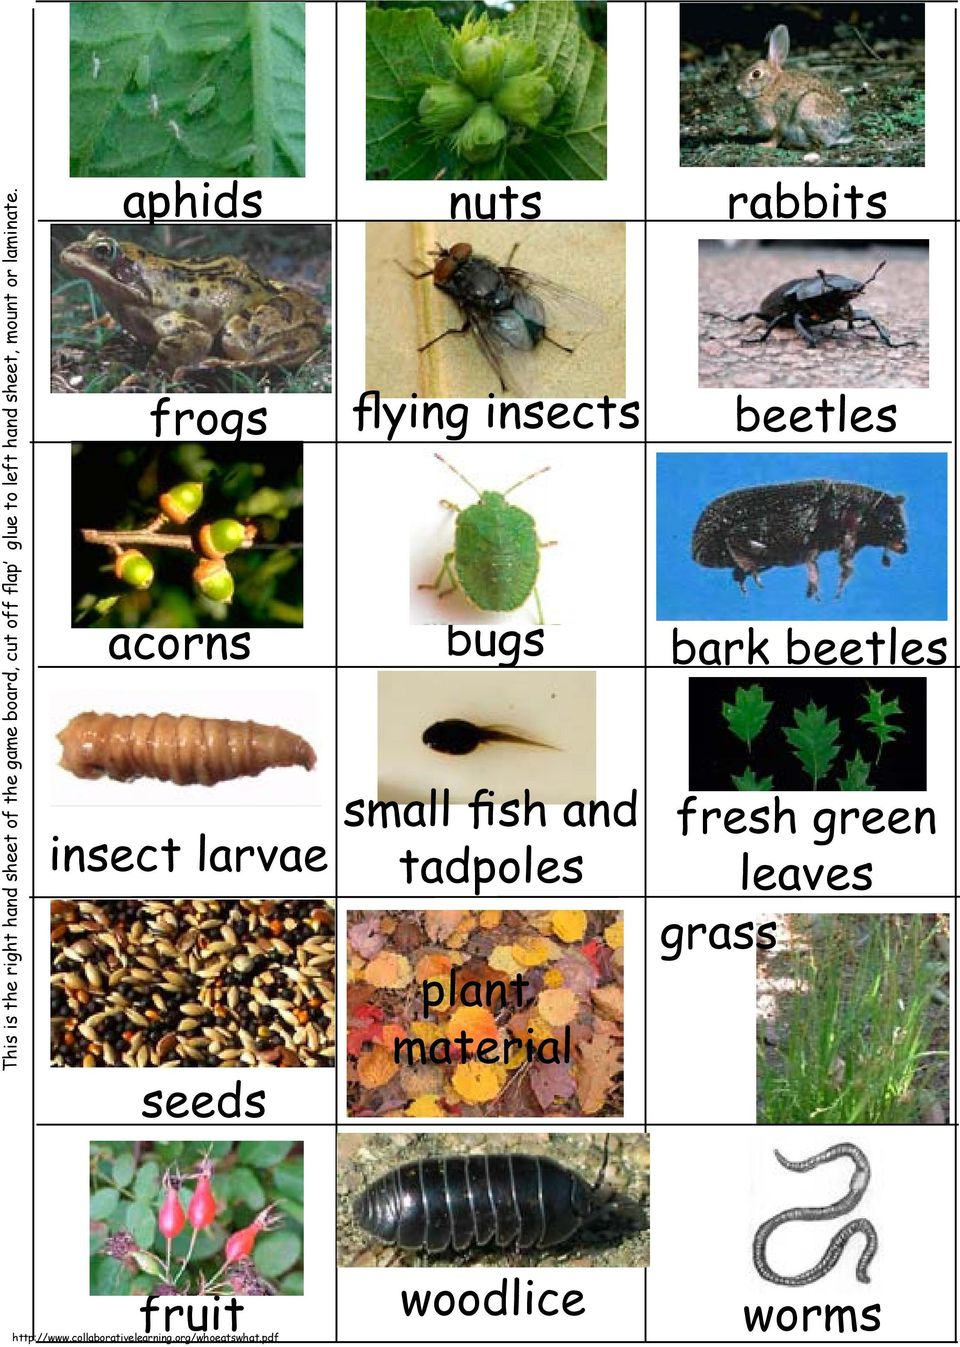 aphids nuts rabbits frogs flying insects beetles acorns bugs bark